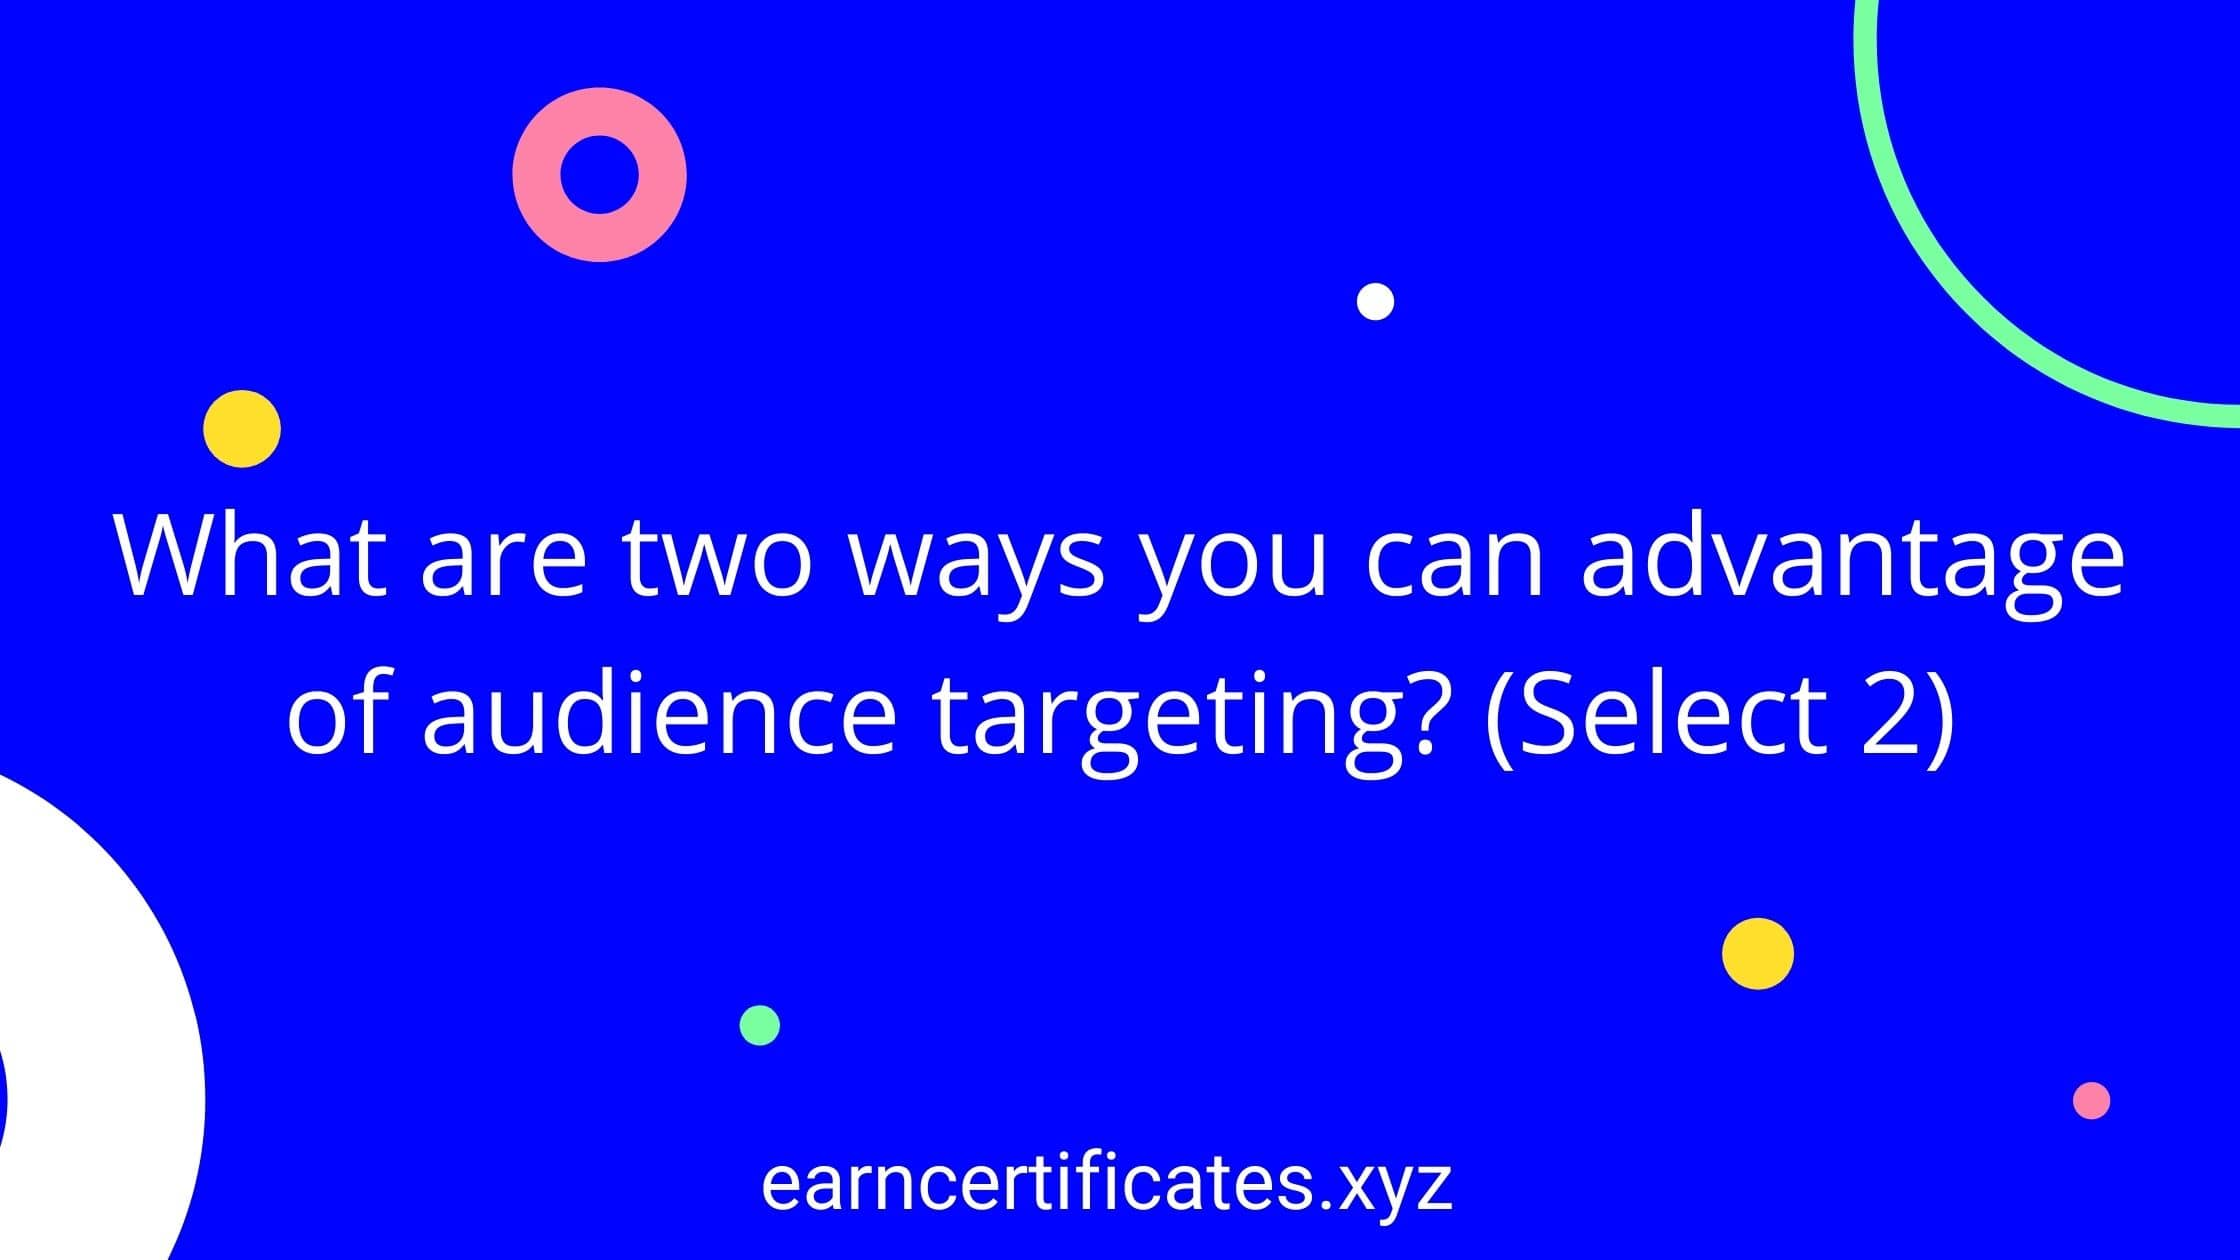 What are two ways you can advantage of audience targeting? (Select 2)